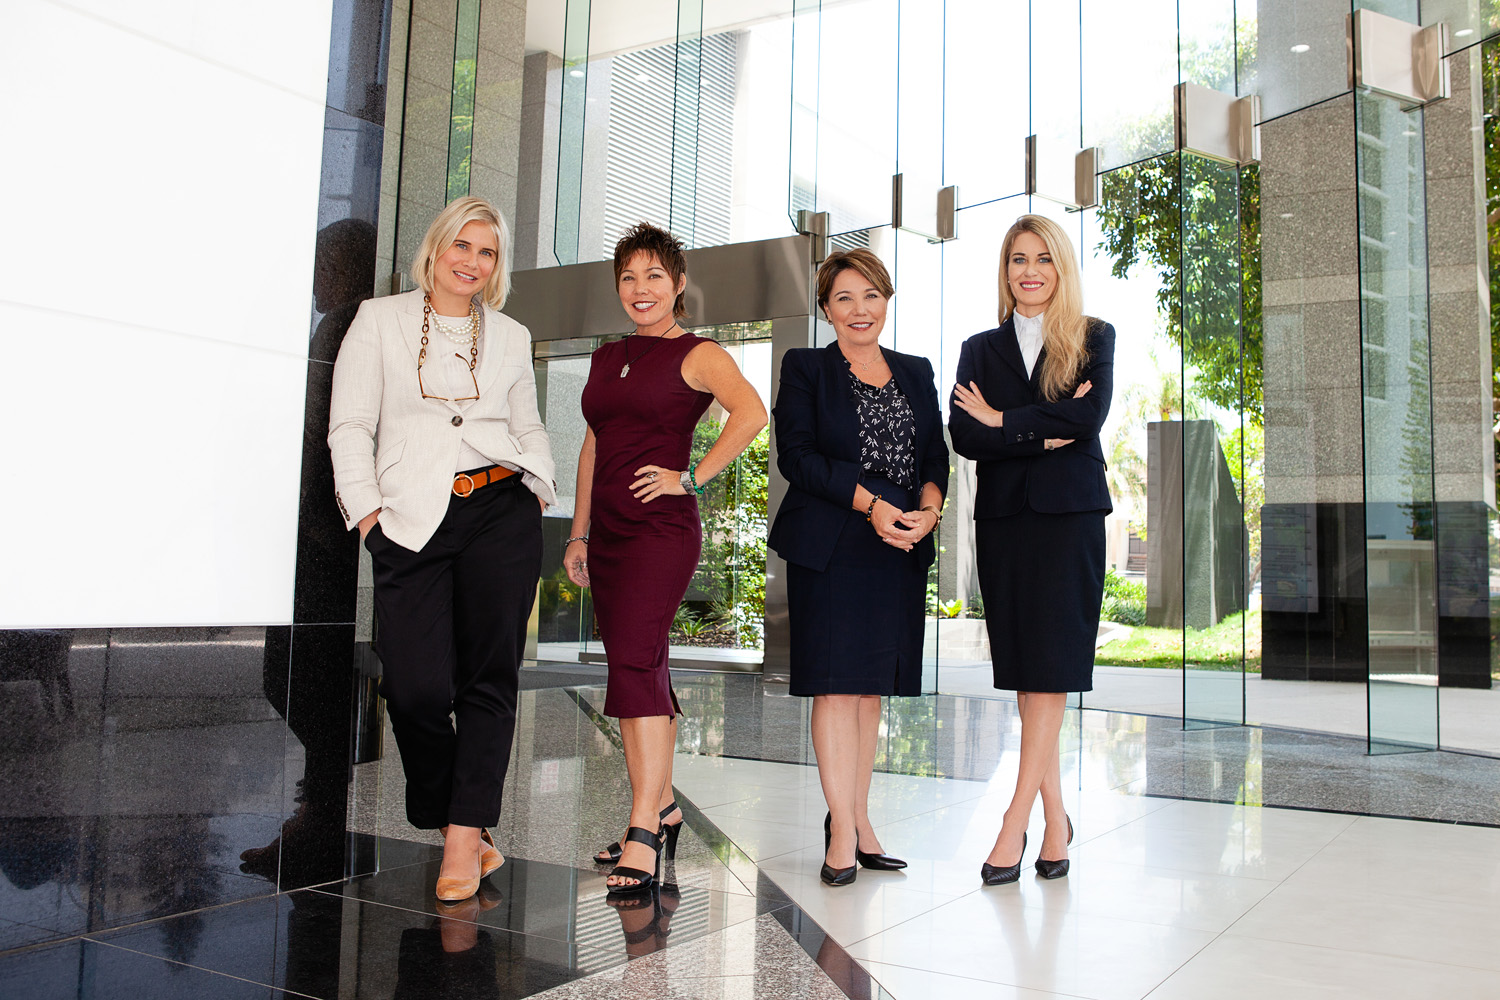 kathleen simpson lawyers; lawyers in suits; 50 cavill avenue surfers paradise; @lananoir; lana noir; lana noir photographer; lana noir photography; lananoir; lawyer kathleen simpson; gold coast lawyer; dv lawyer; domestic violence lawyer